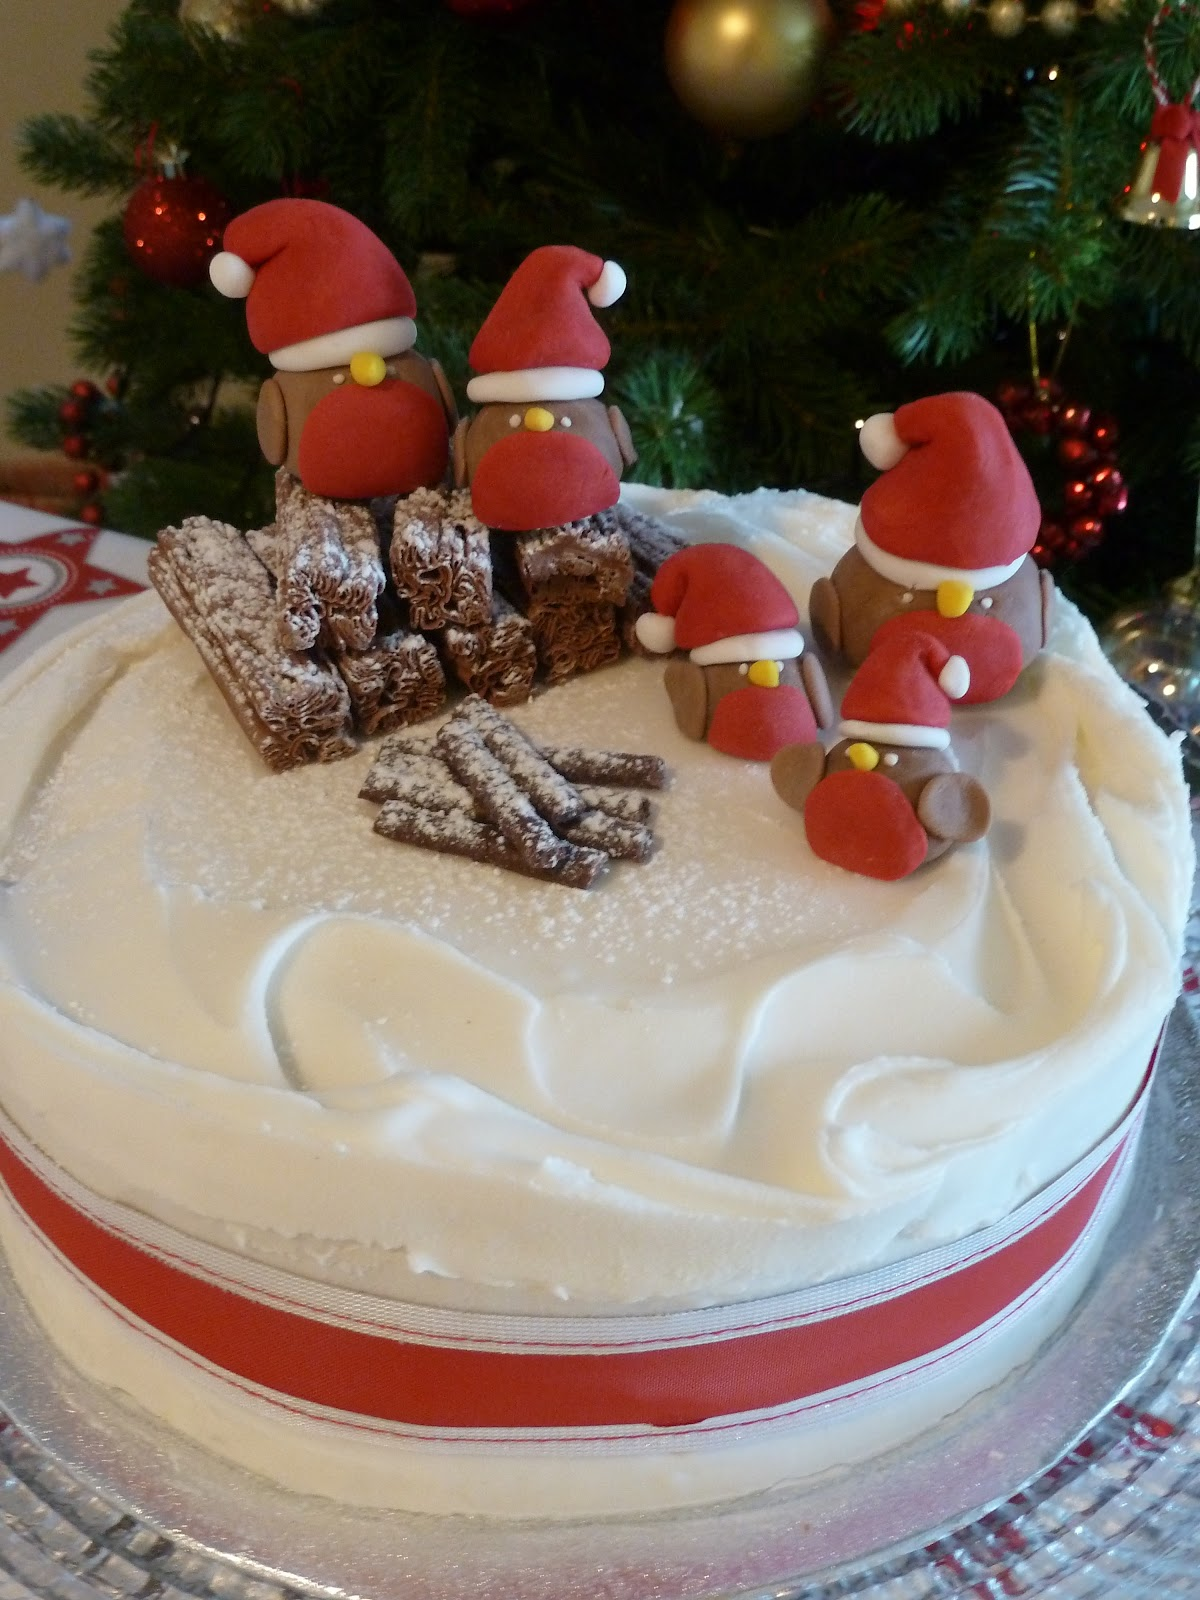 Royal Icing Cake Decorating Designs : Christmas Cake Inspiration to create Festive Robins Cake ...